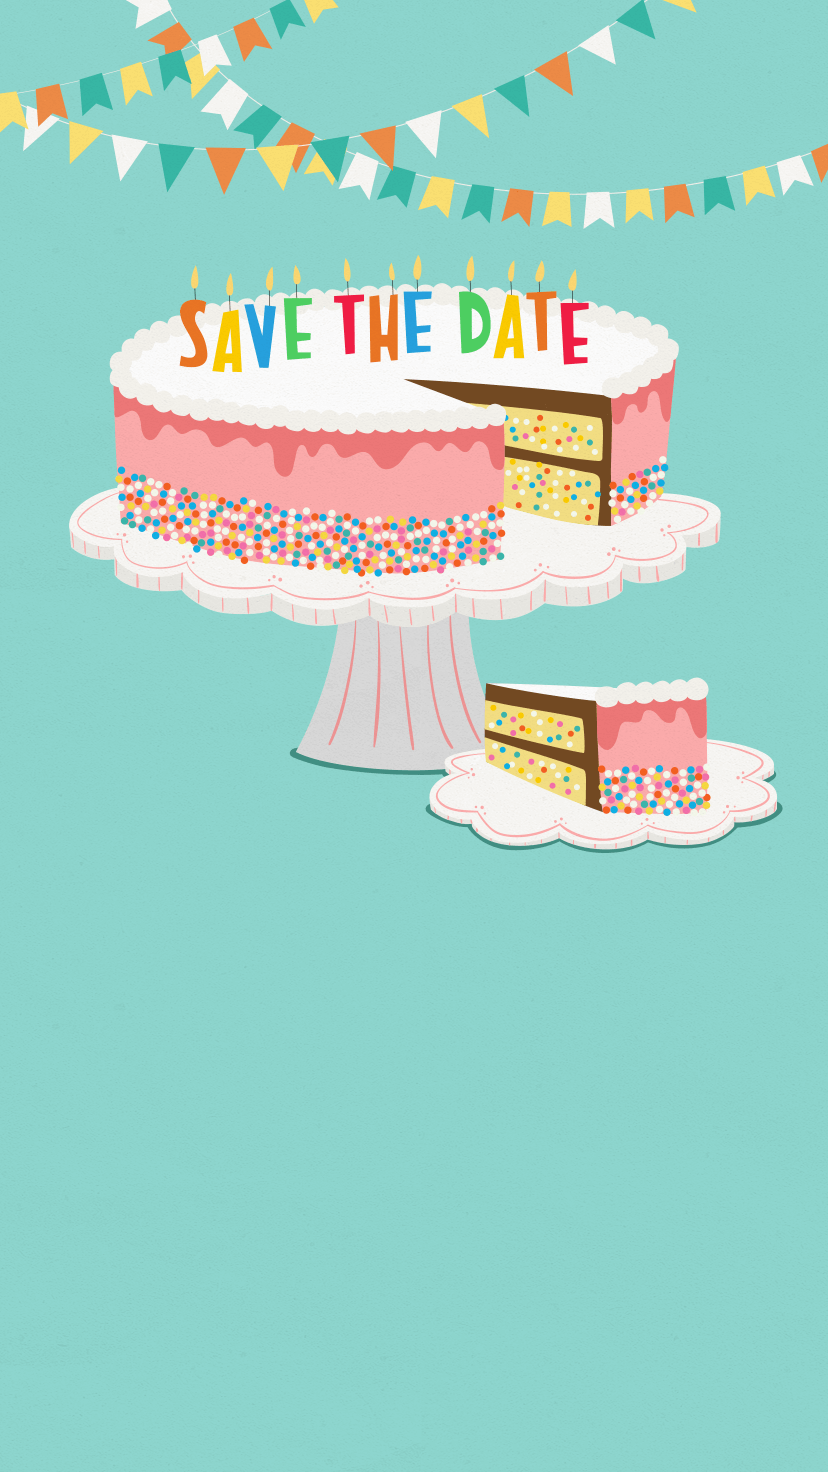 Save the dates.